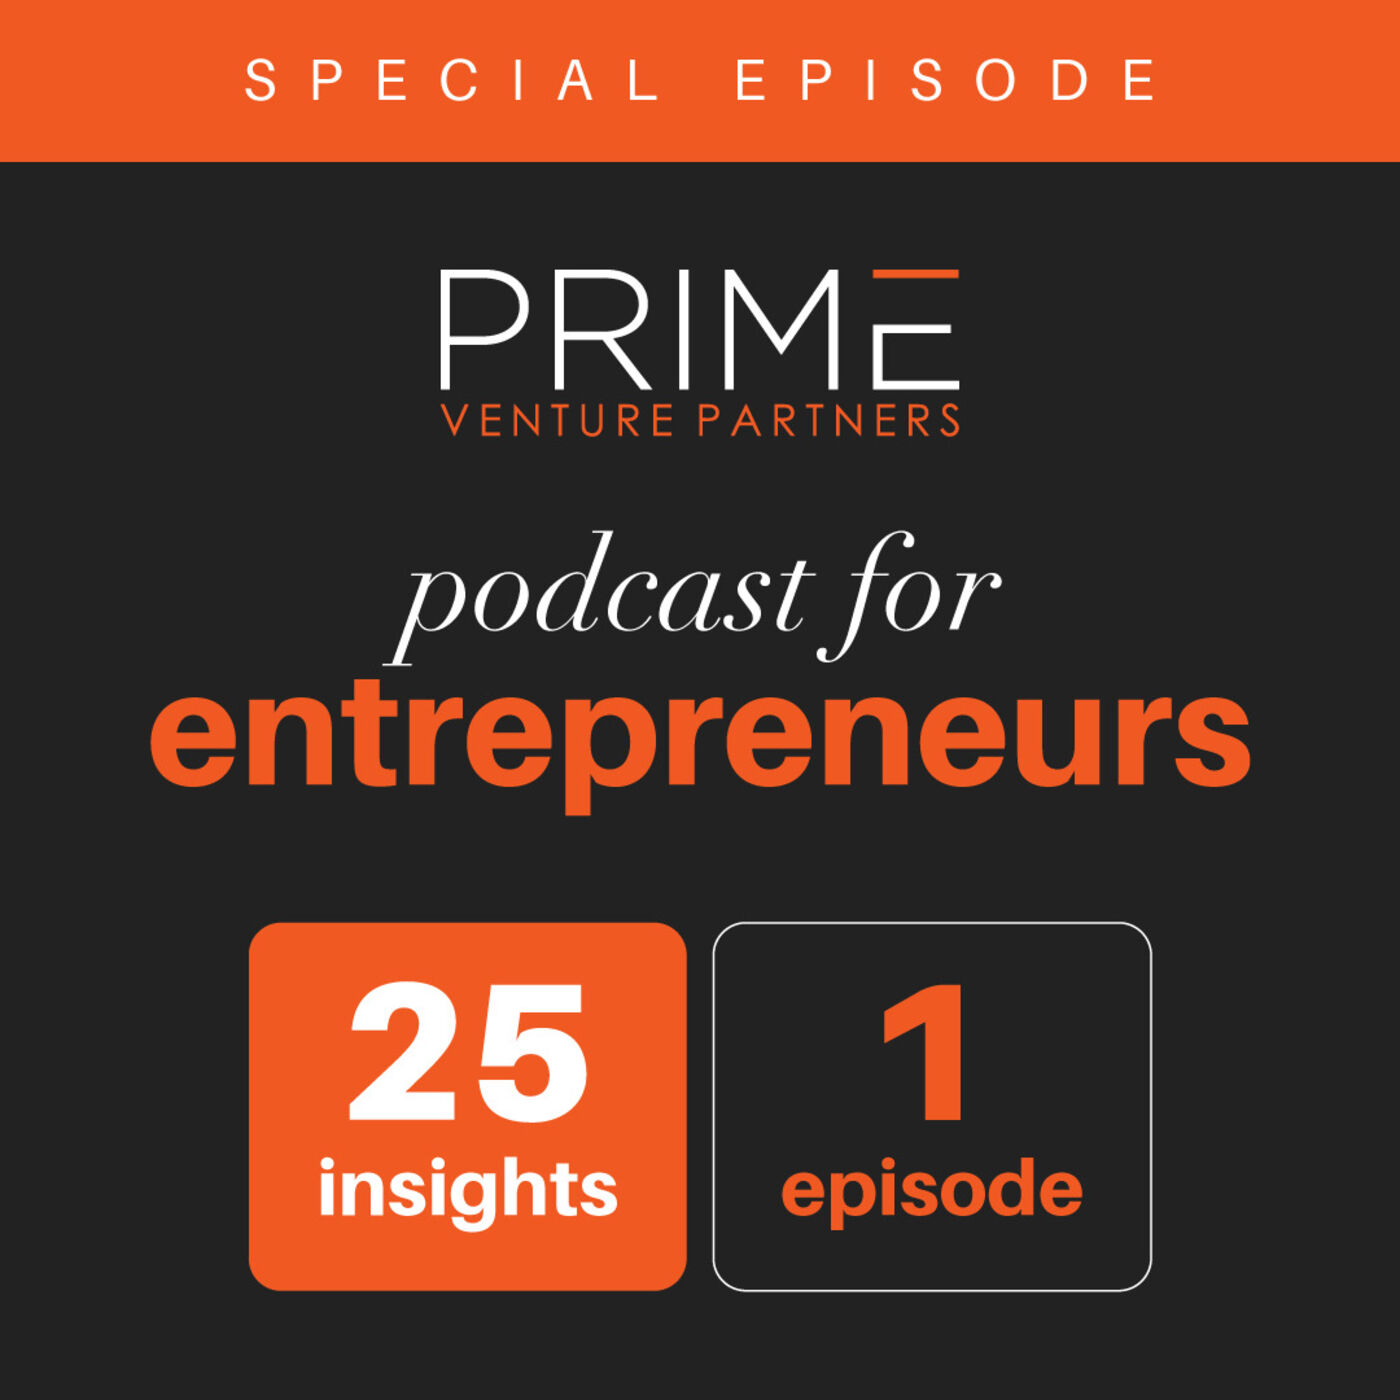 Special Episode: SaaS, Platforms, Fintech, Growth, Branding and more